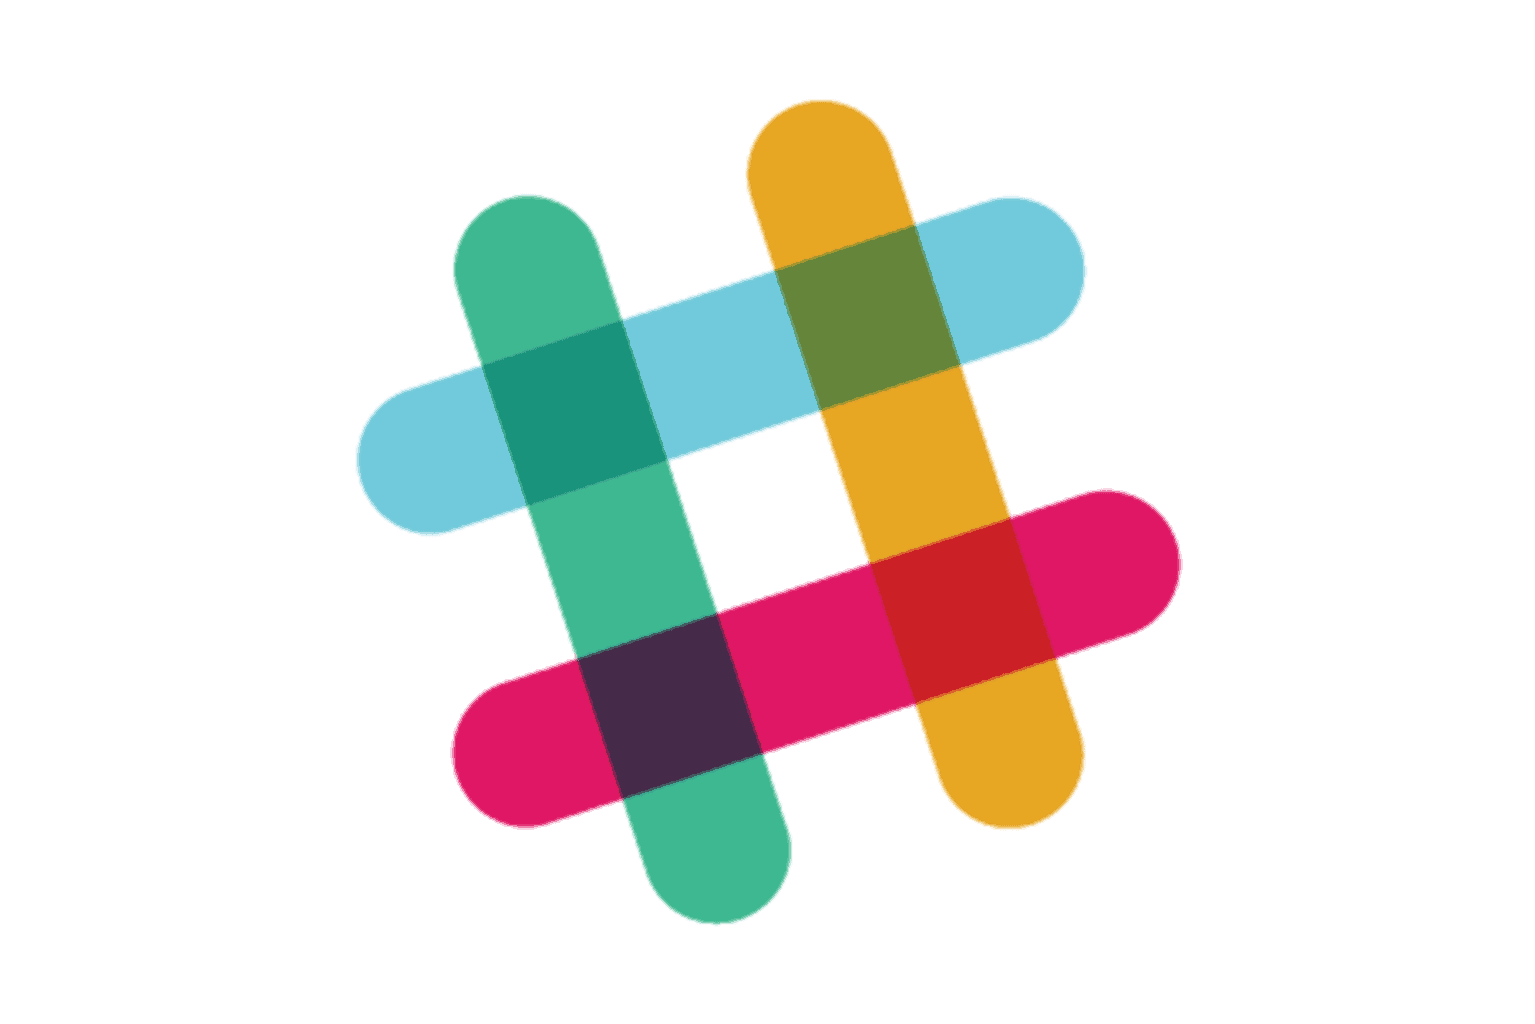 Slack Technologies Inc (WORK)'s Shares fall after Company Forecasts Losses for the Third Quarter